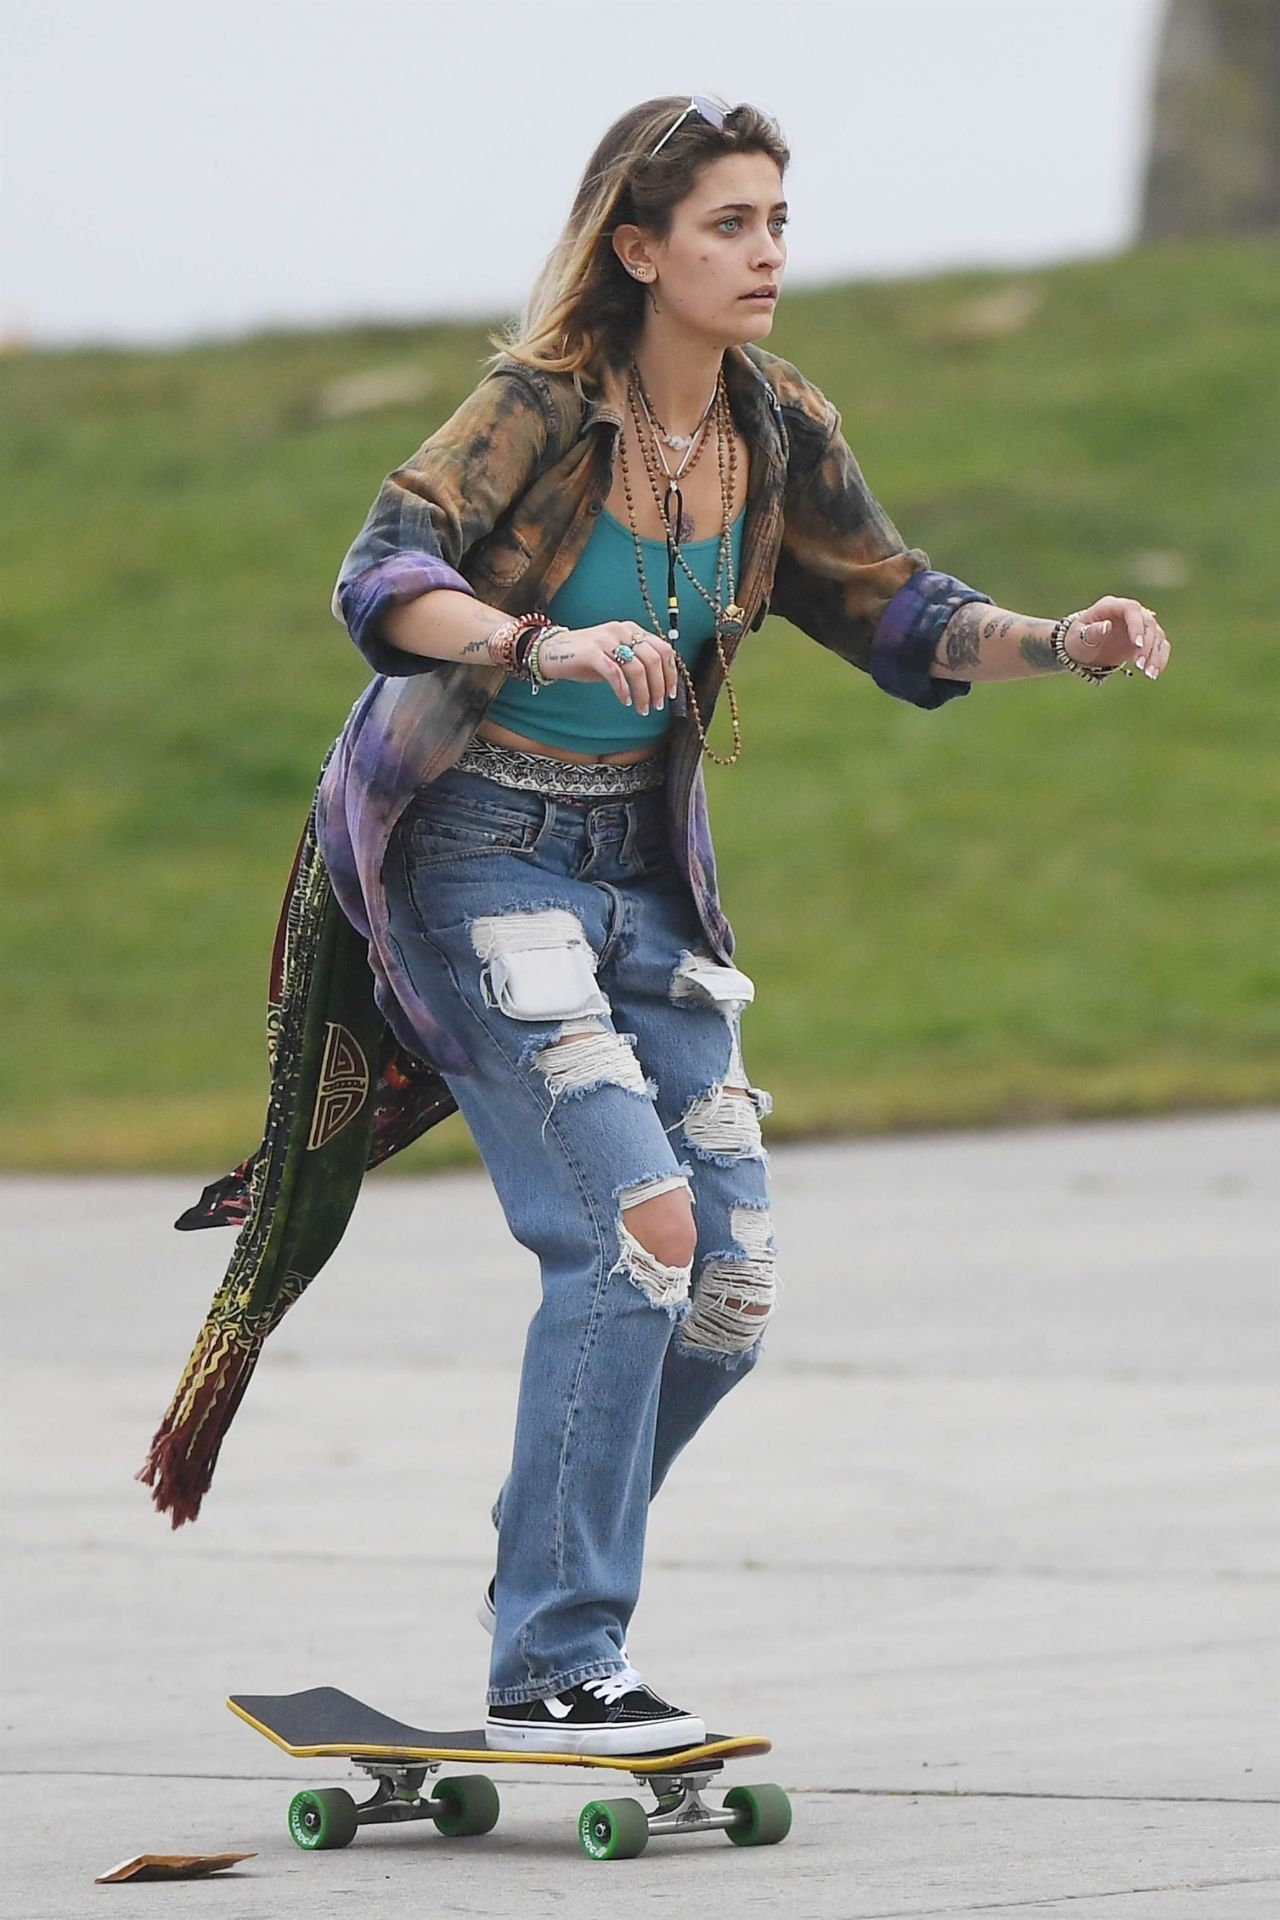 Paris Jackson Skateboarding At Venice Beach Boardwalk